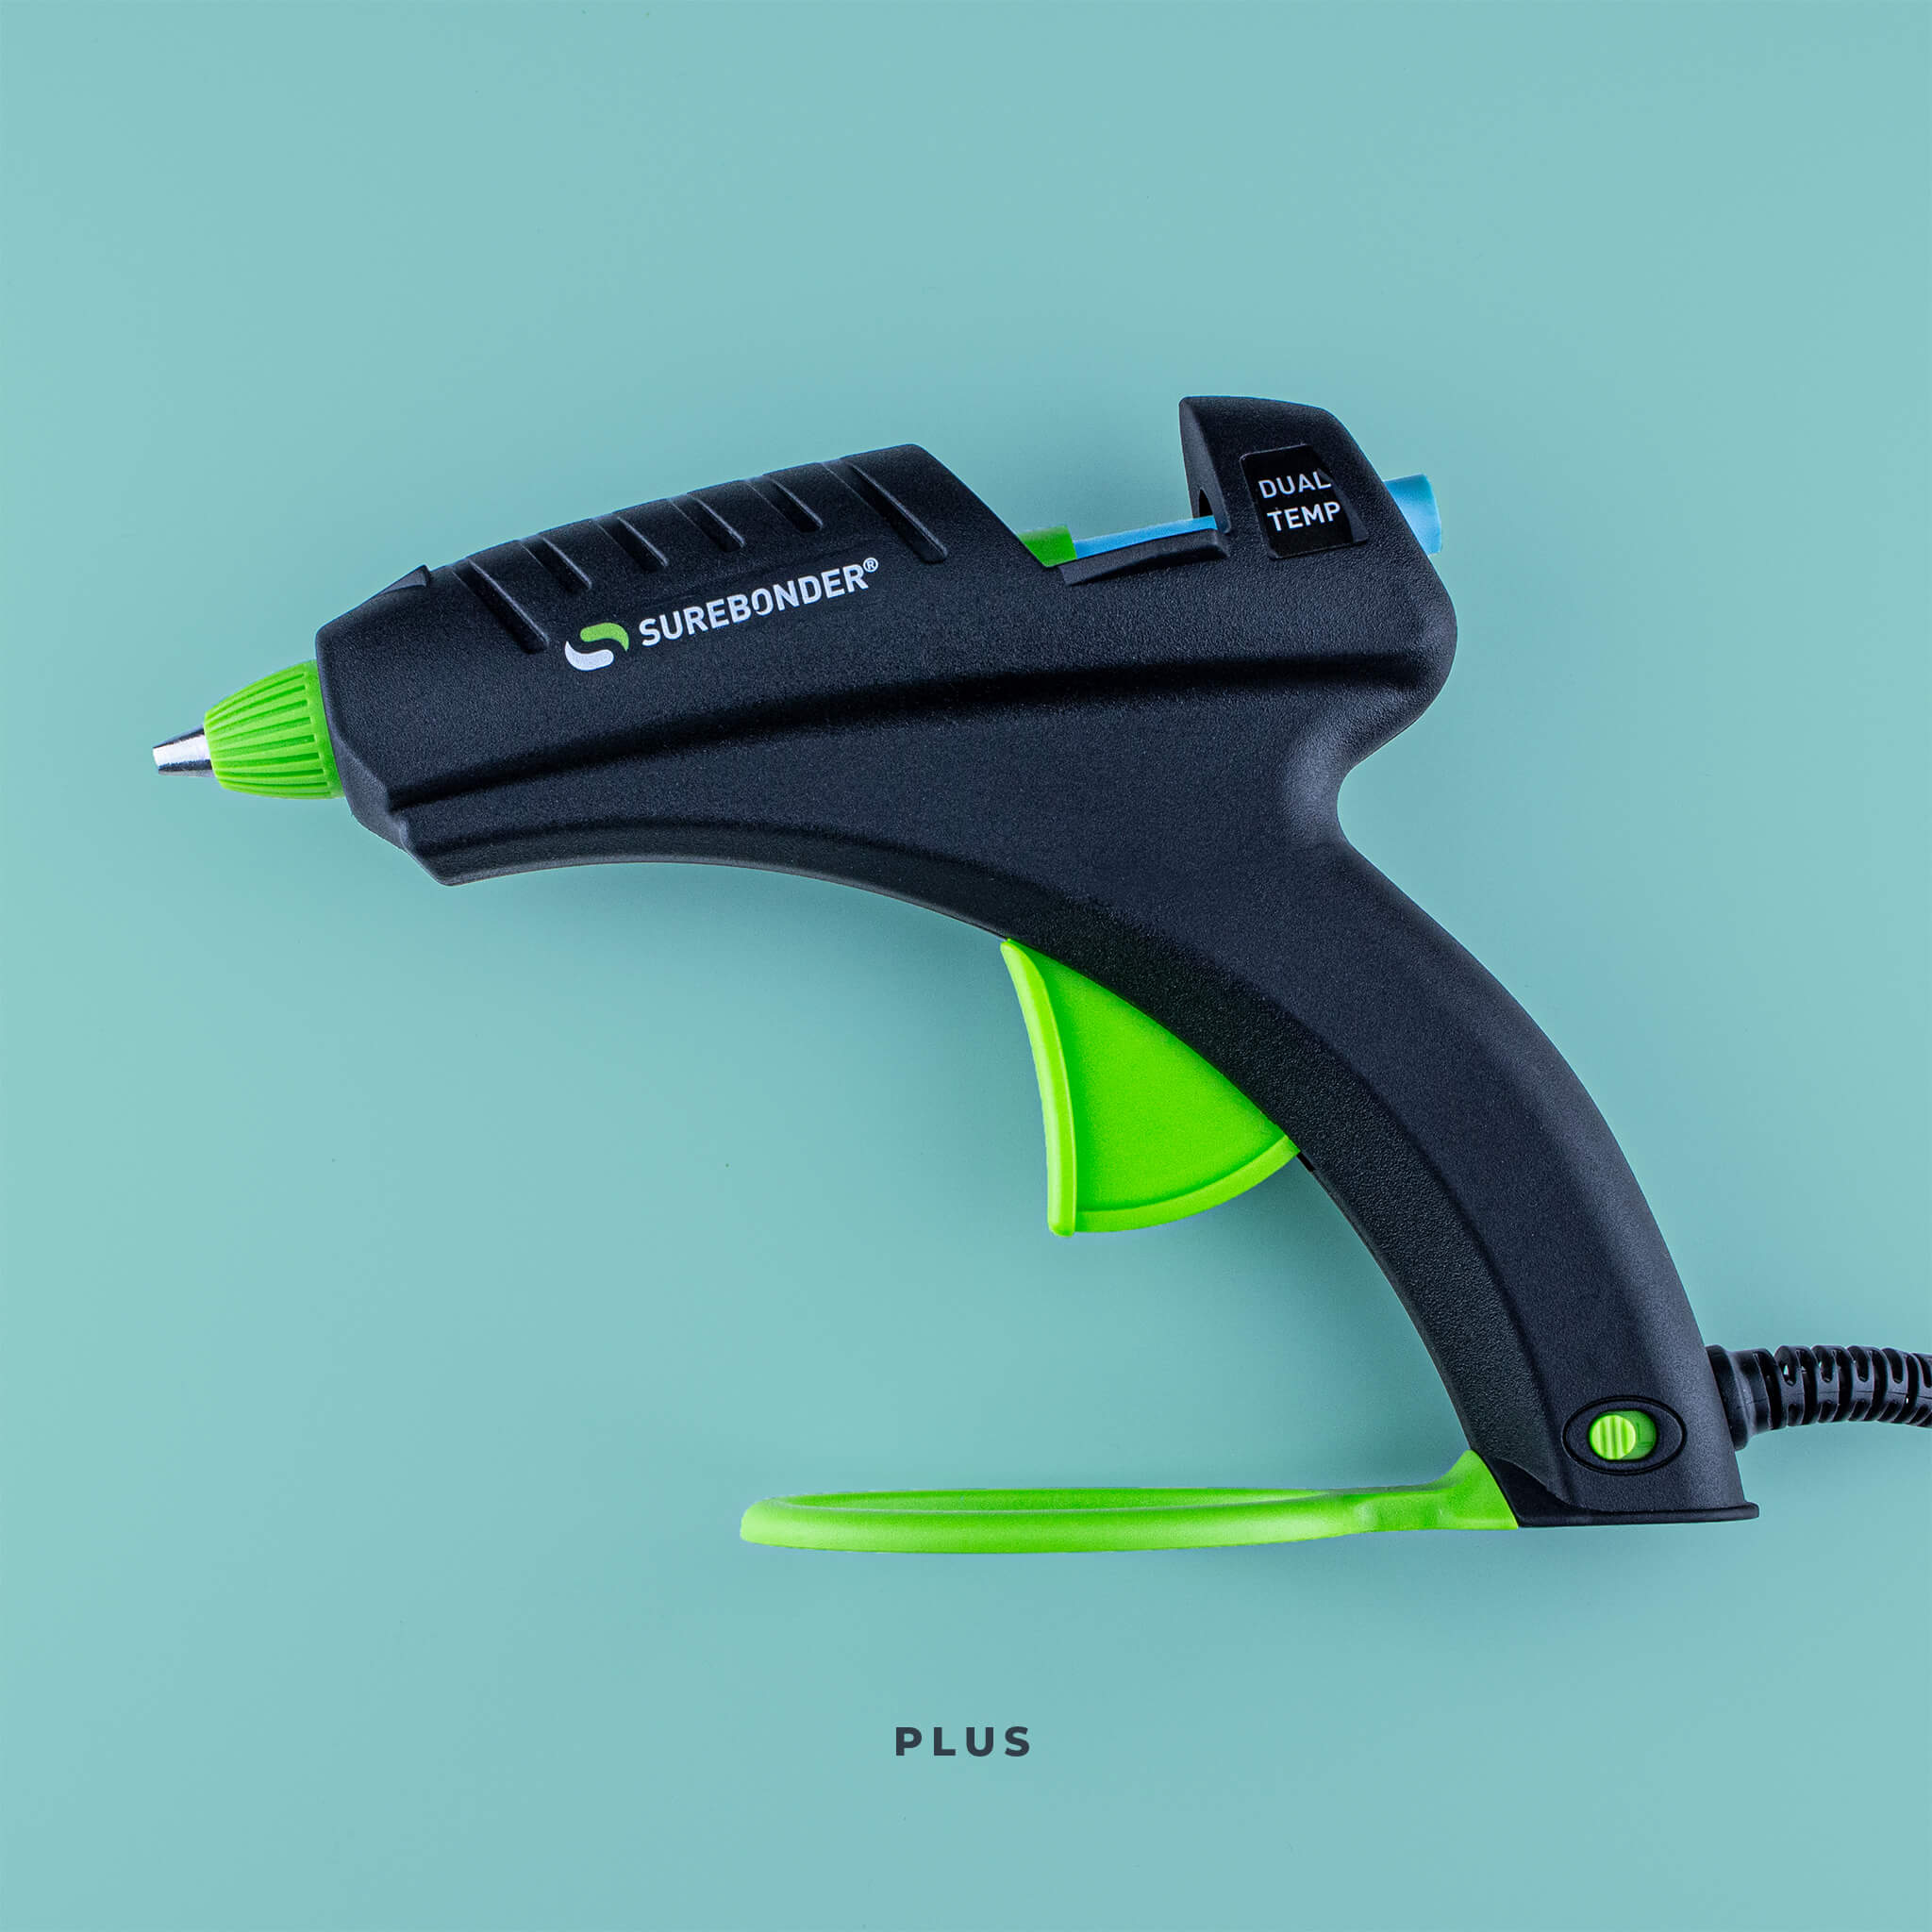 Surebonder Glue Gun for Sealing Wax